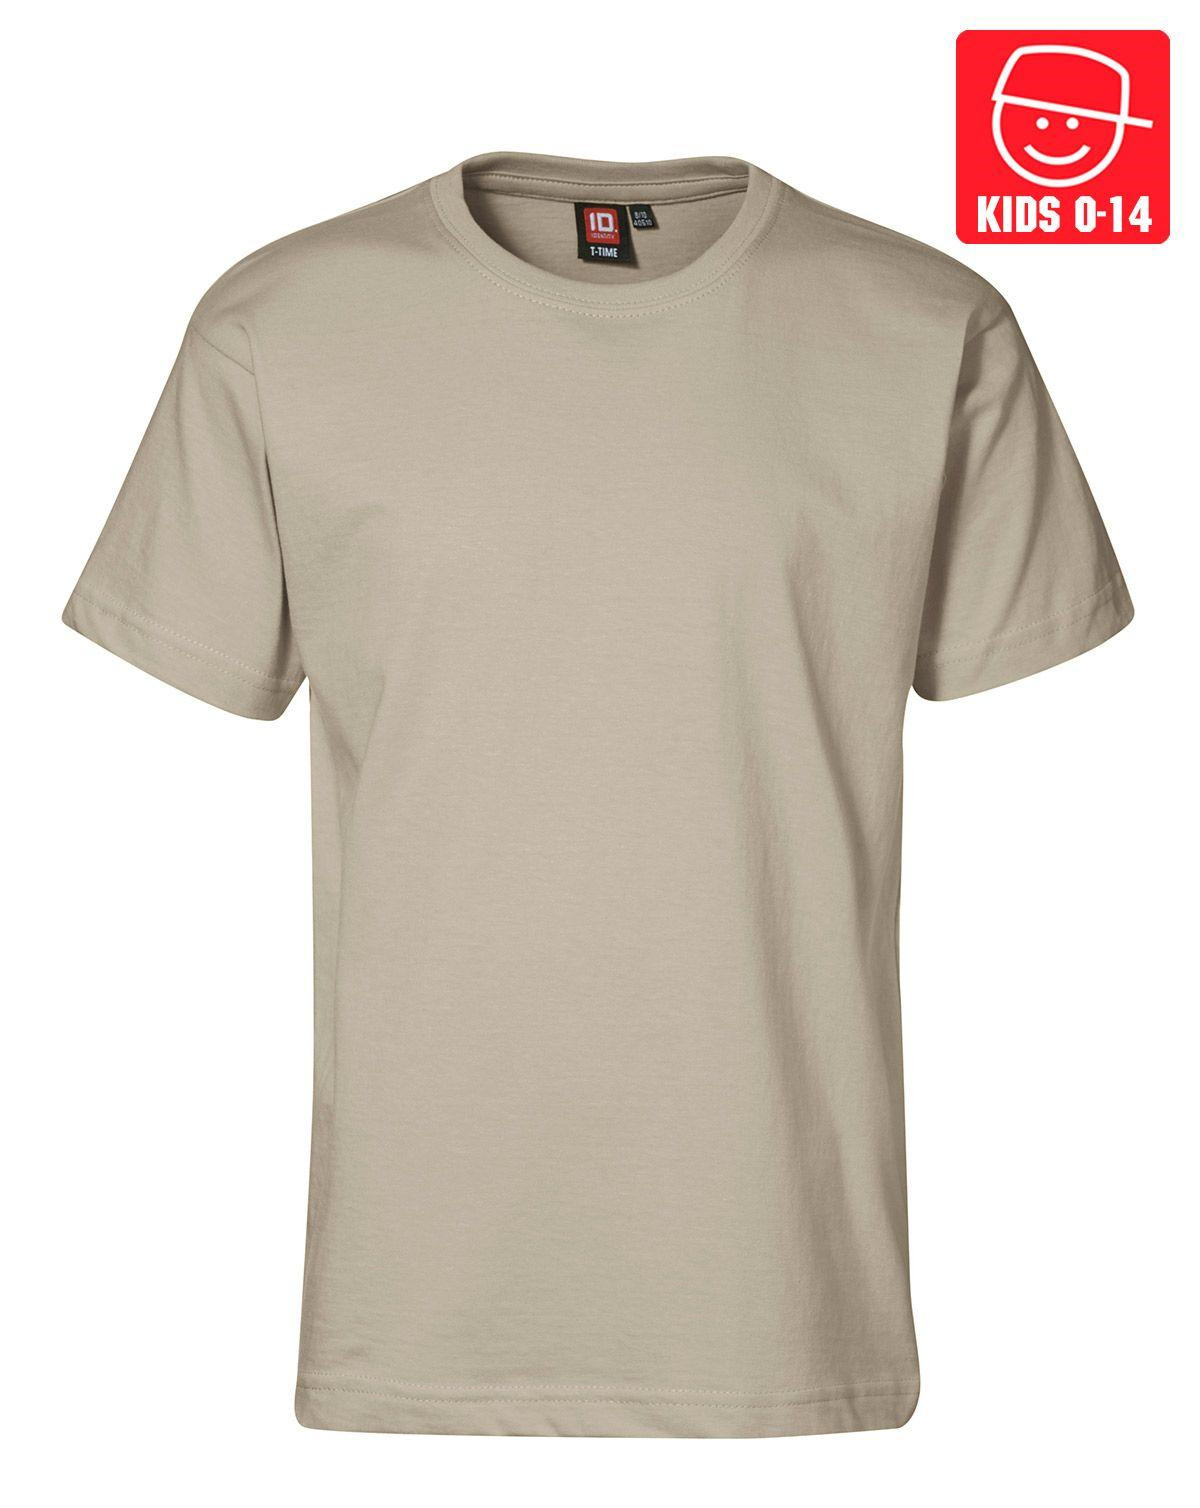 Image of   ID T-TIME T-shirt (Khaki, 128)